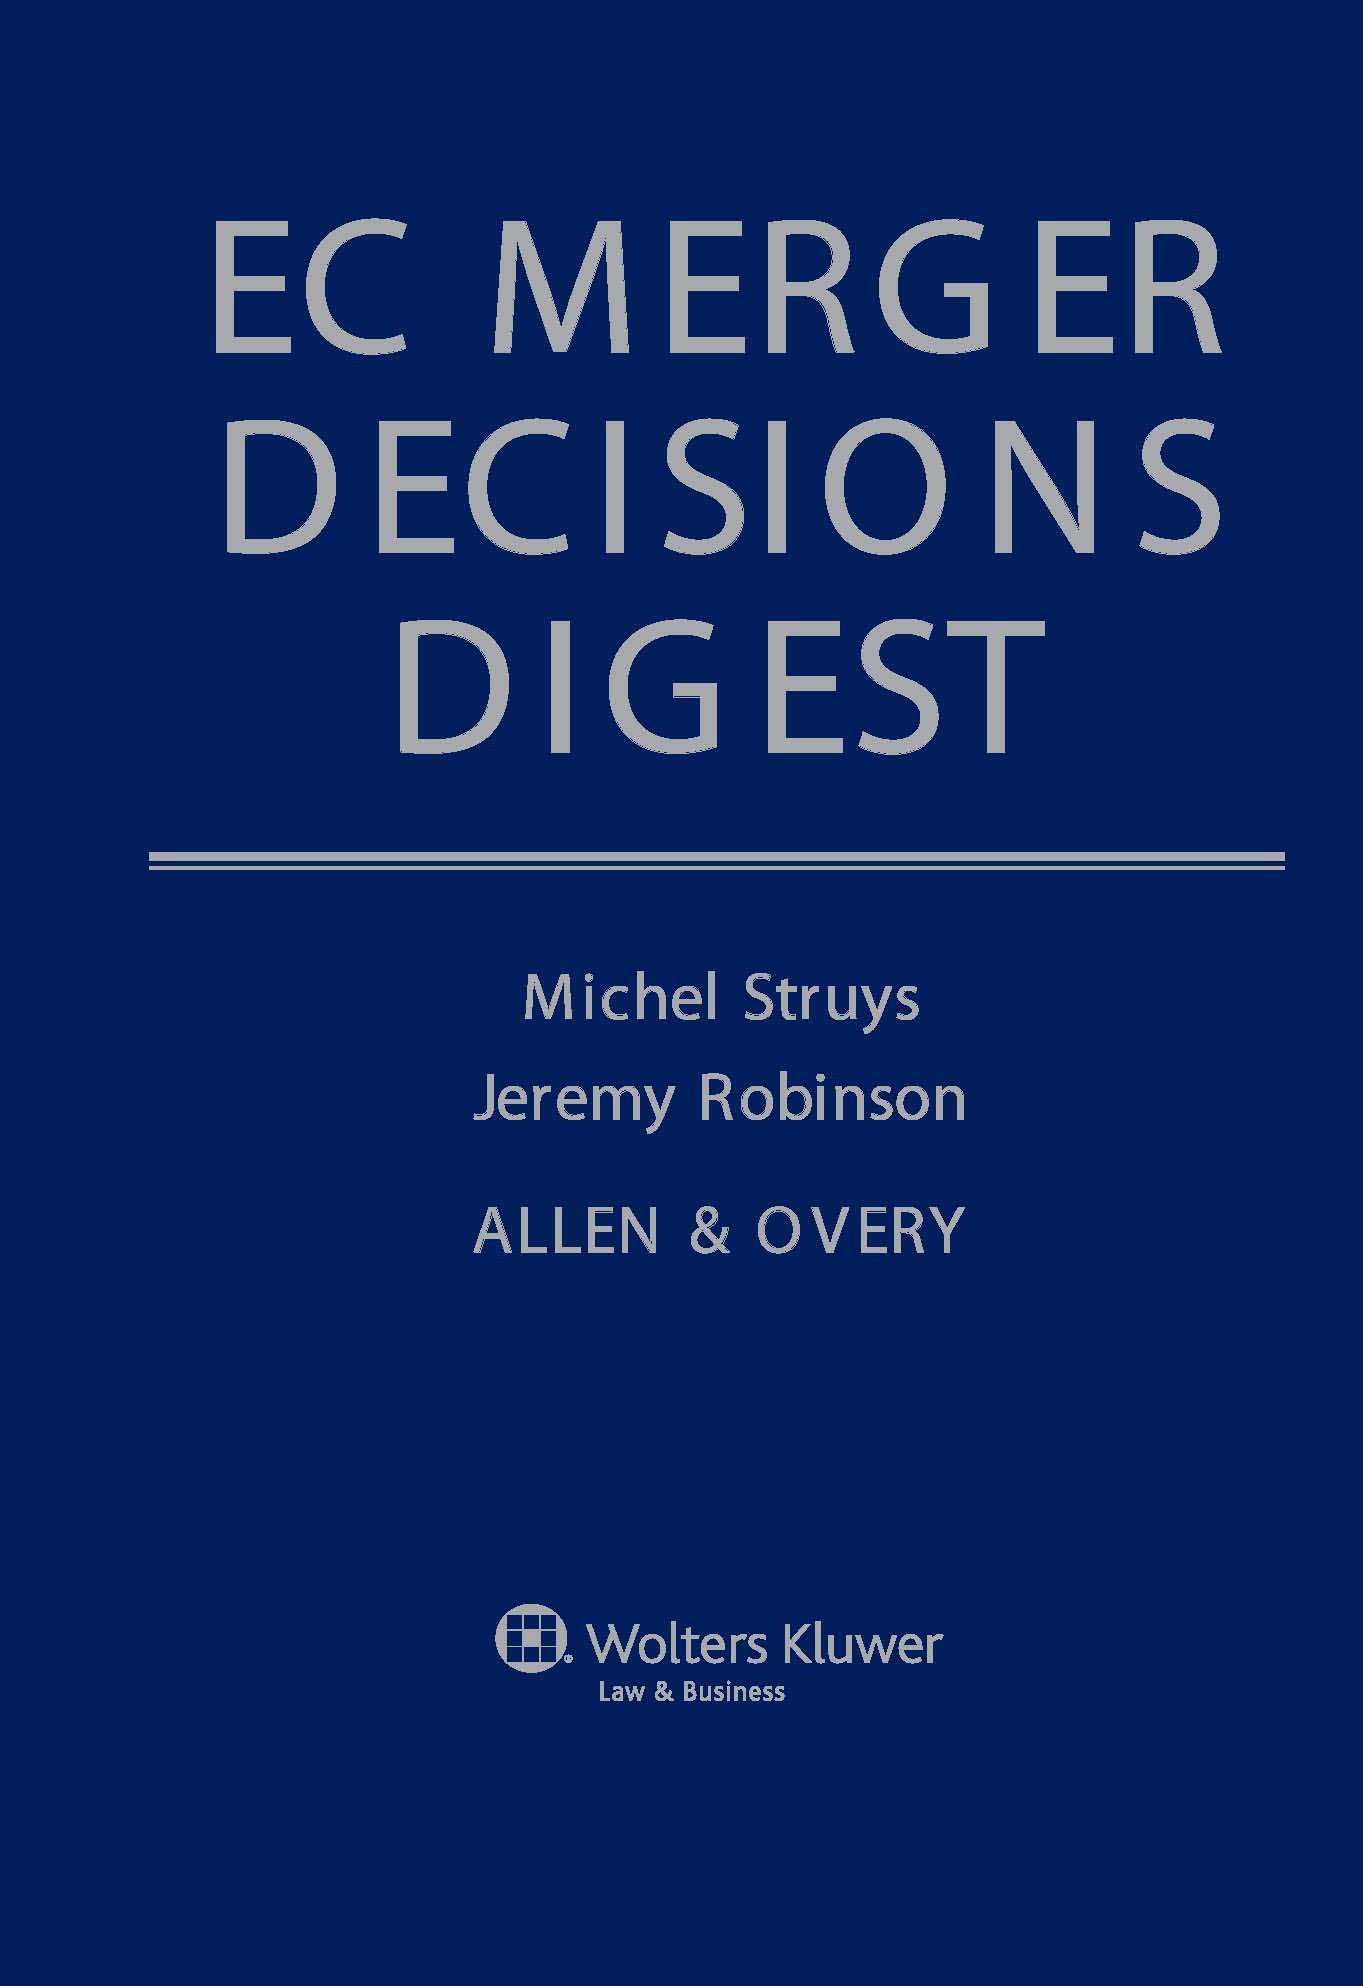 EC Merger  Decisions Digest- The Complete Guide to EC Merger Regulations Decisions